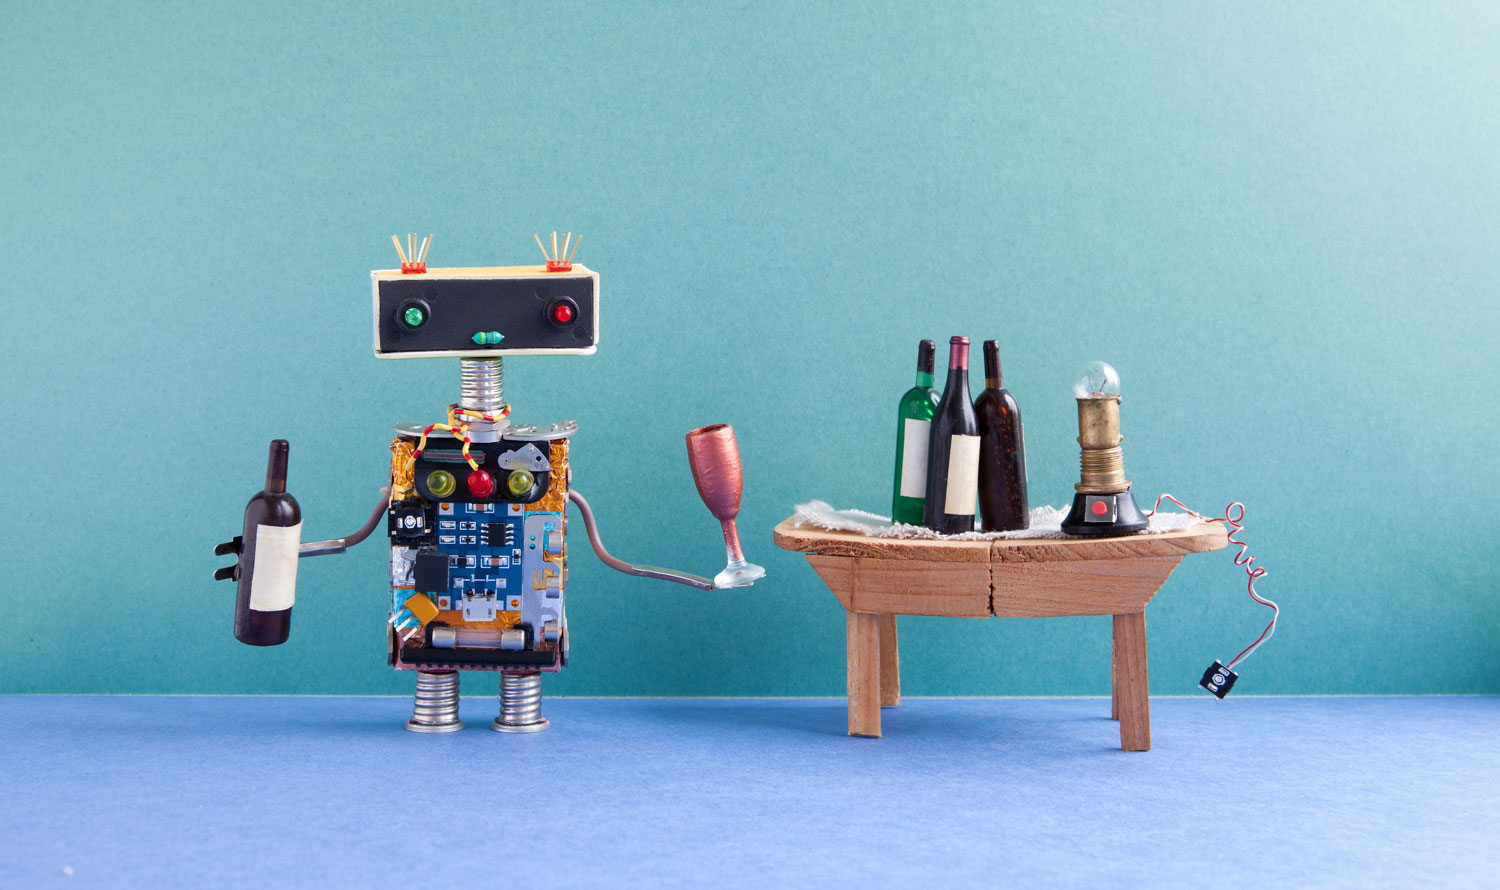 Will Intelligent Technology Ever Rule the World?